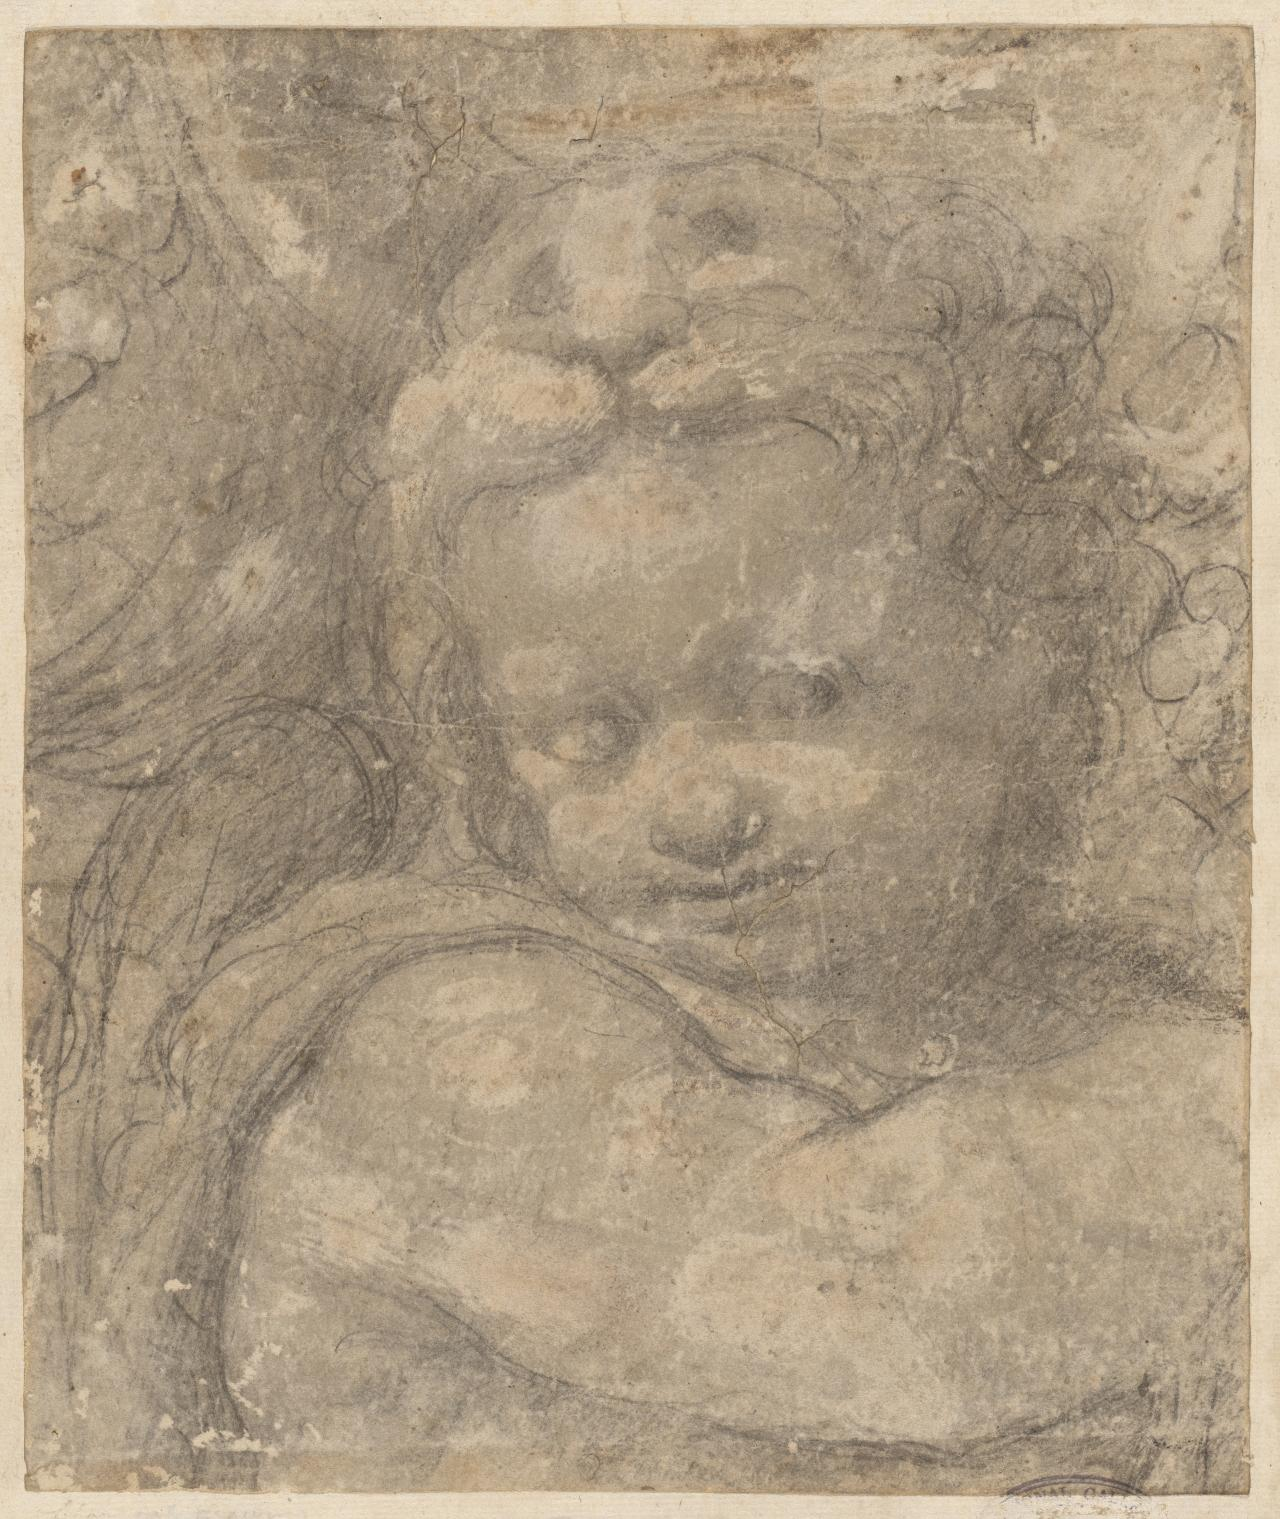 Head of a Putto, cartoon fragment